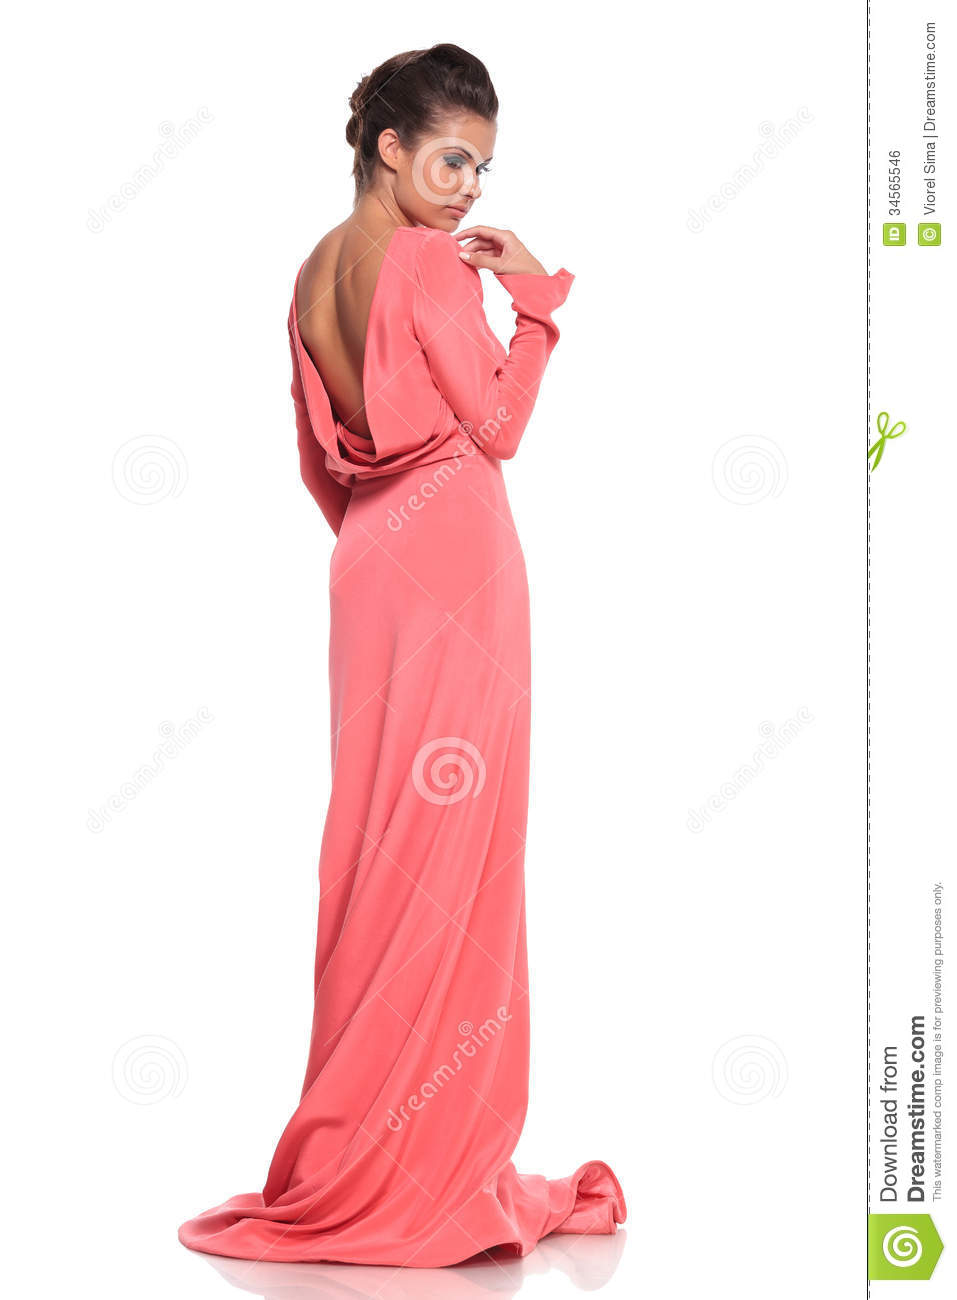 Back View Of A Young Woman In A Pink Gown Stock Photo - Image of ...